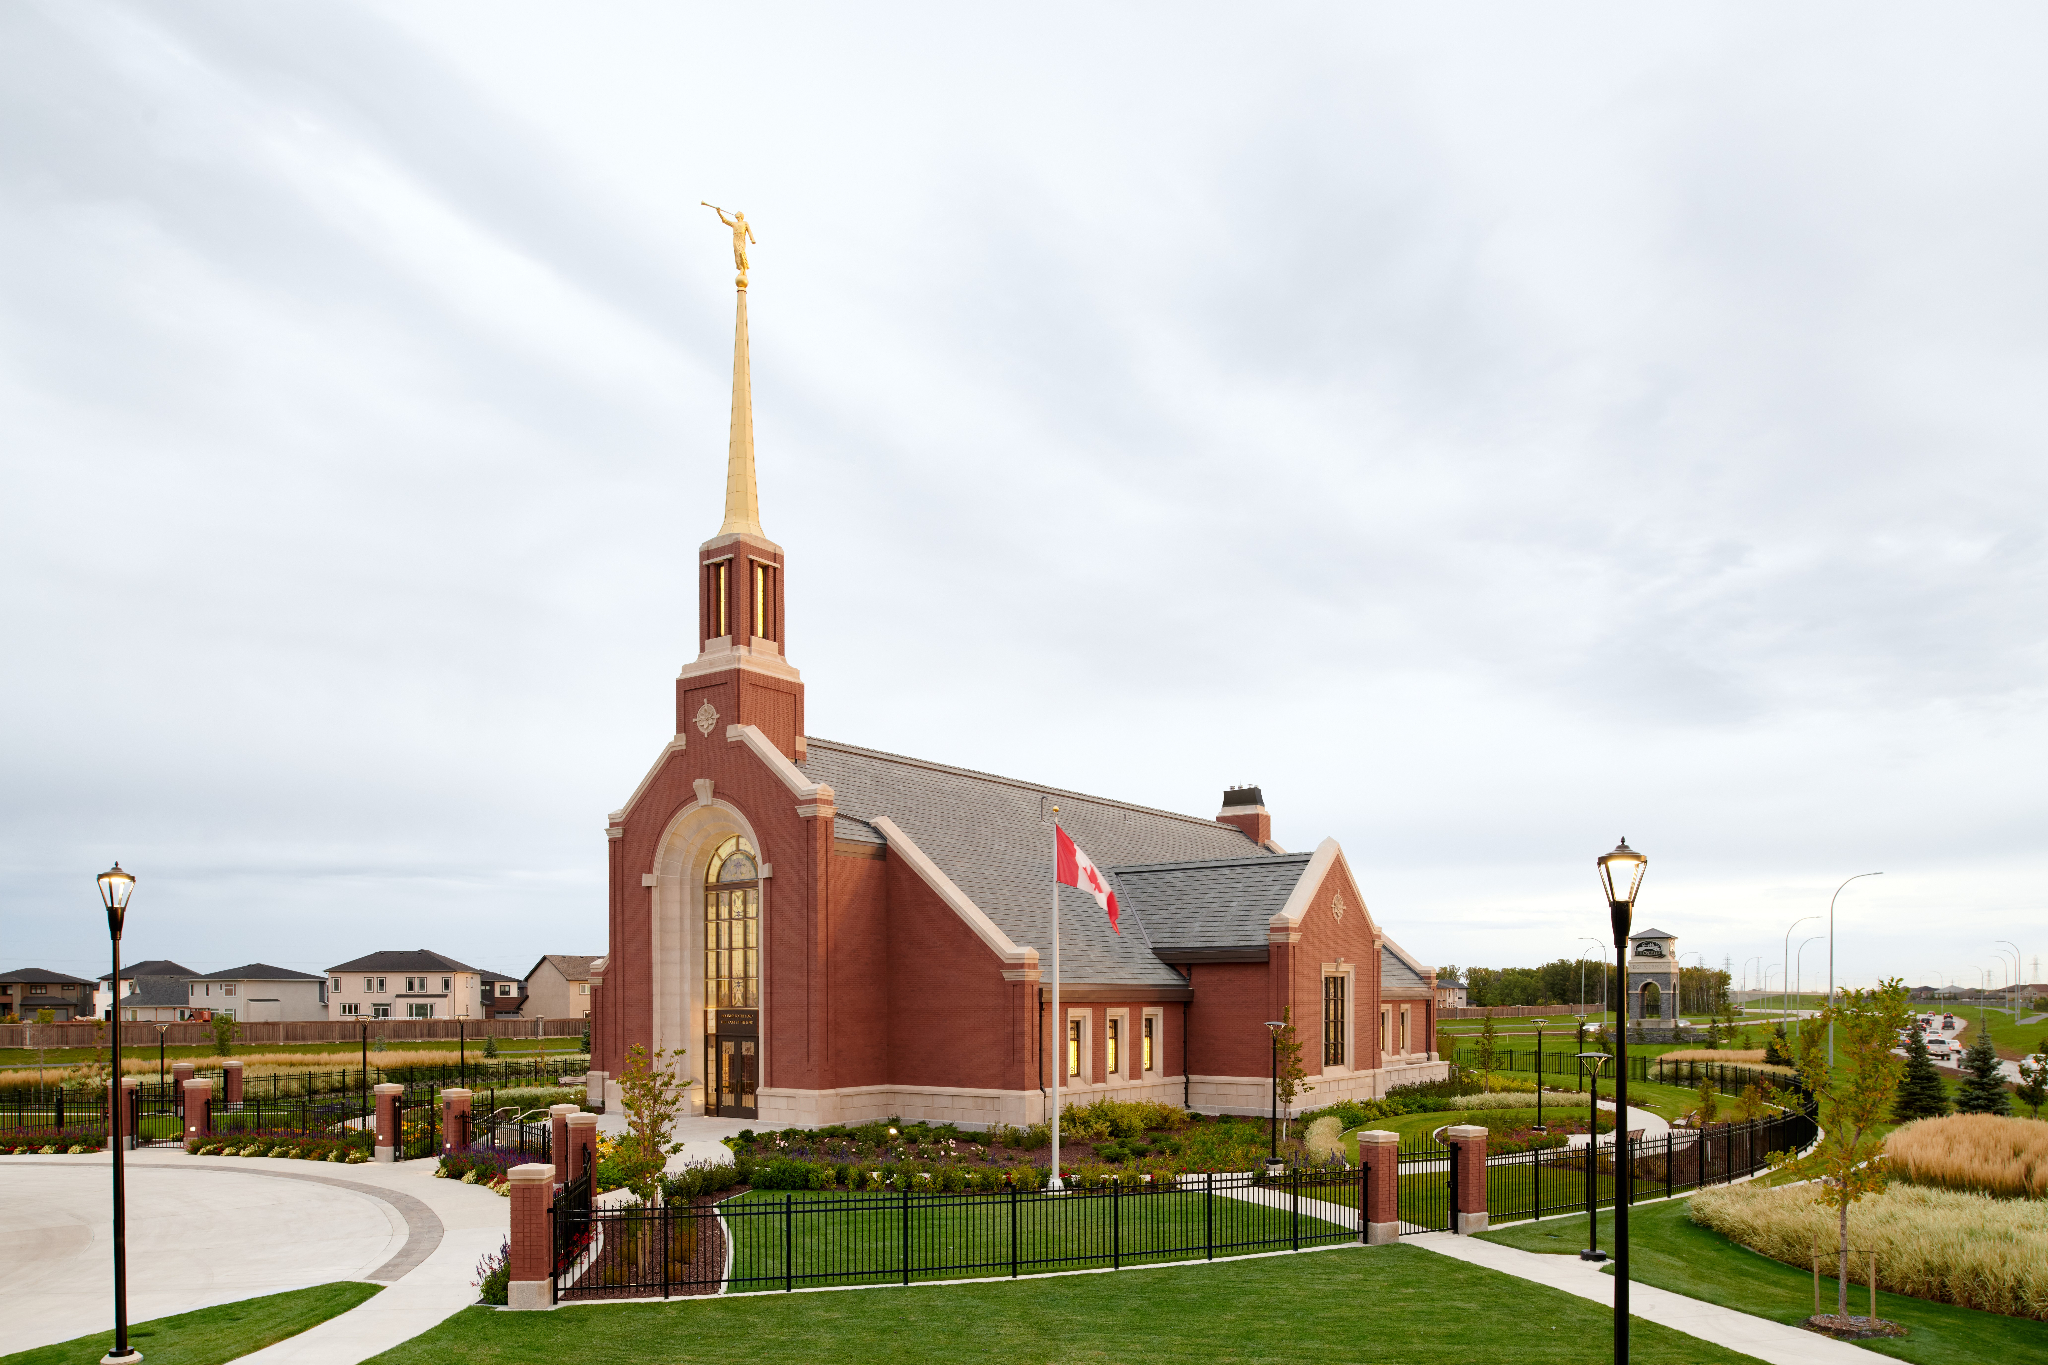 An exterior view of the Winnipeg Manitoba Temple in the morning.